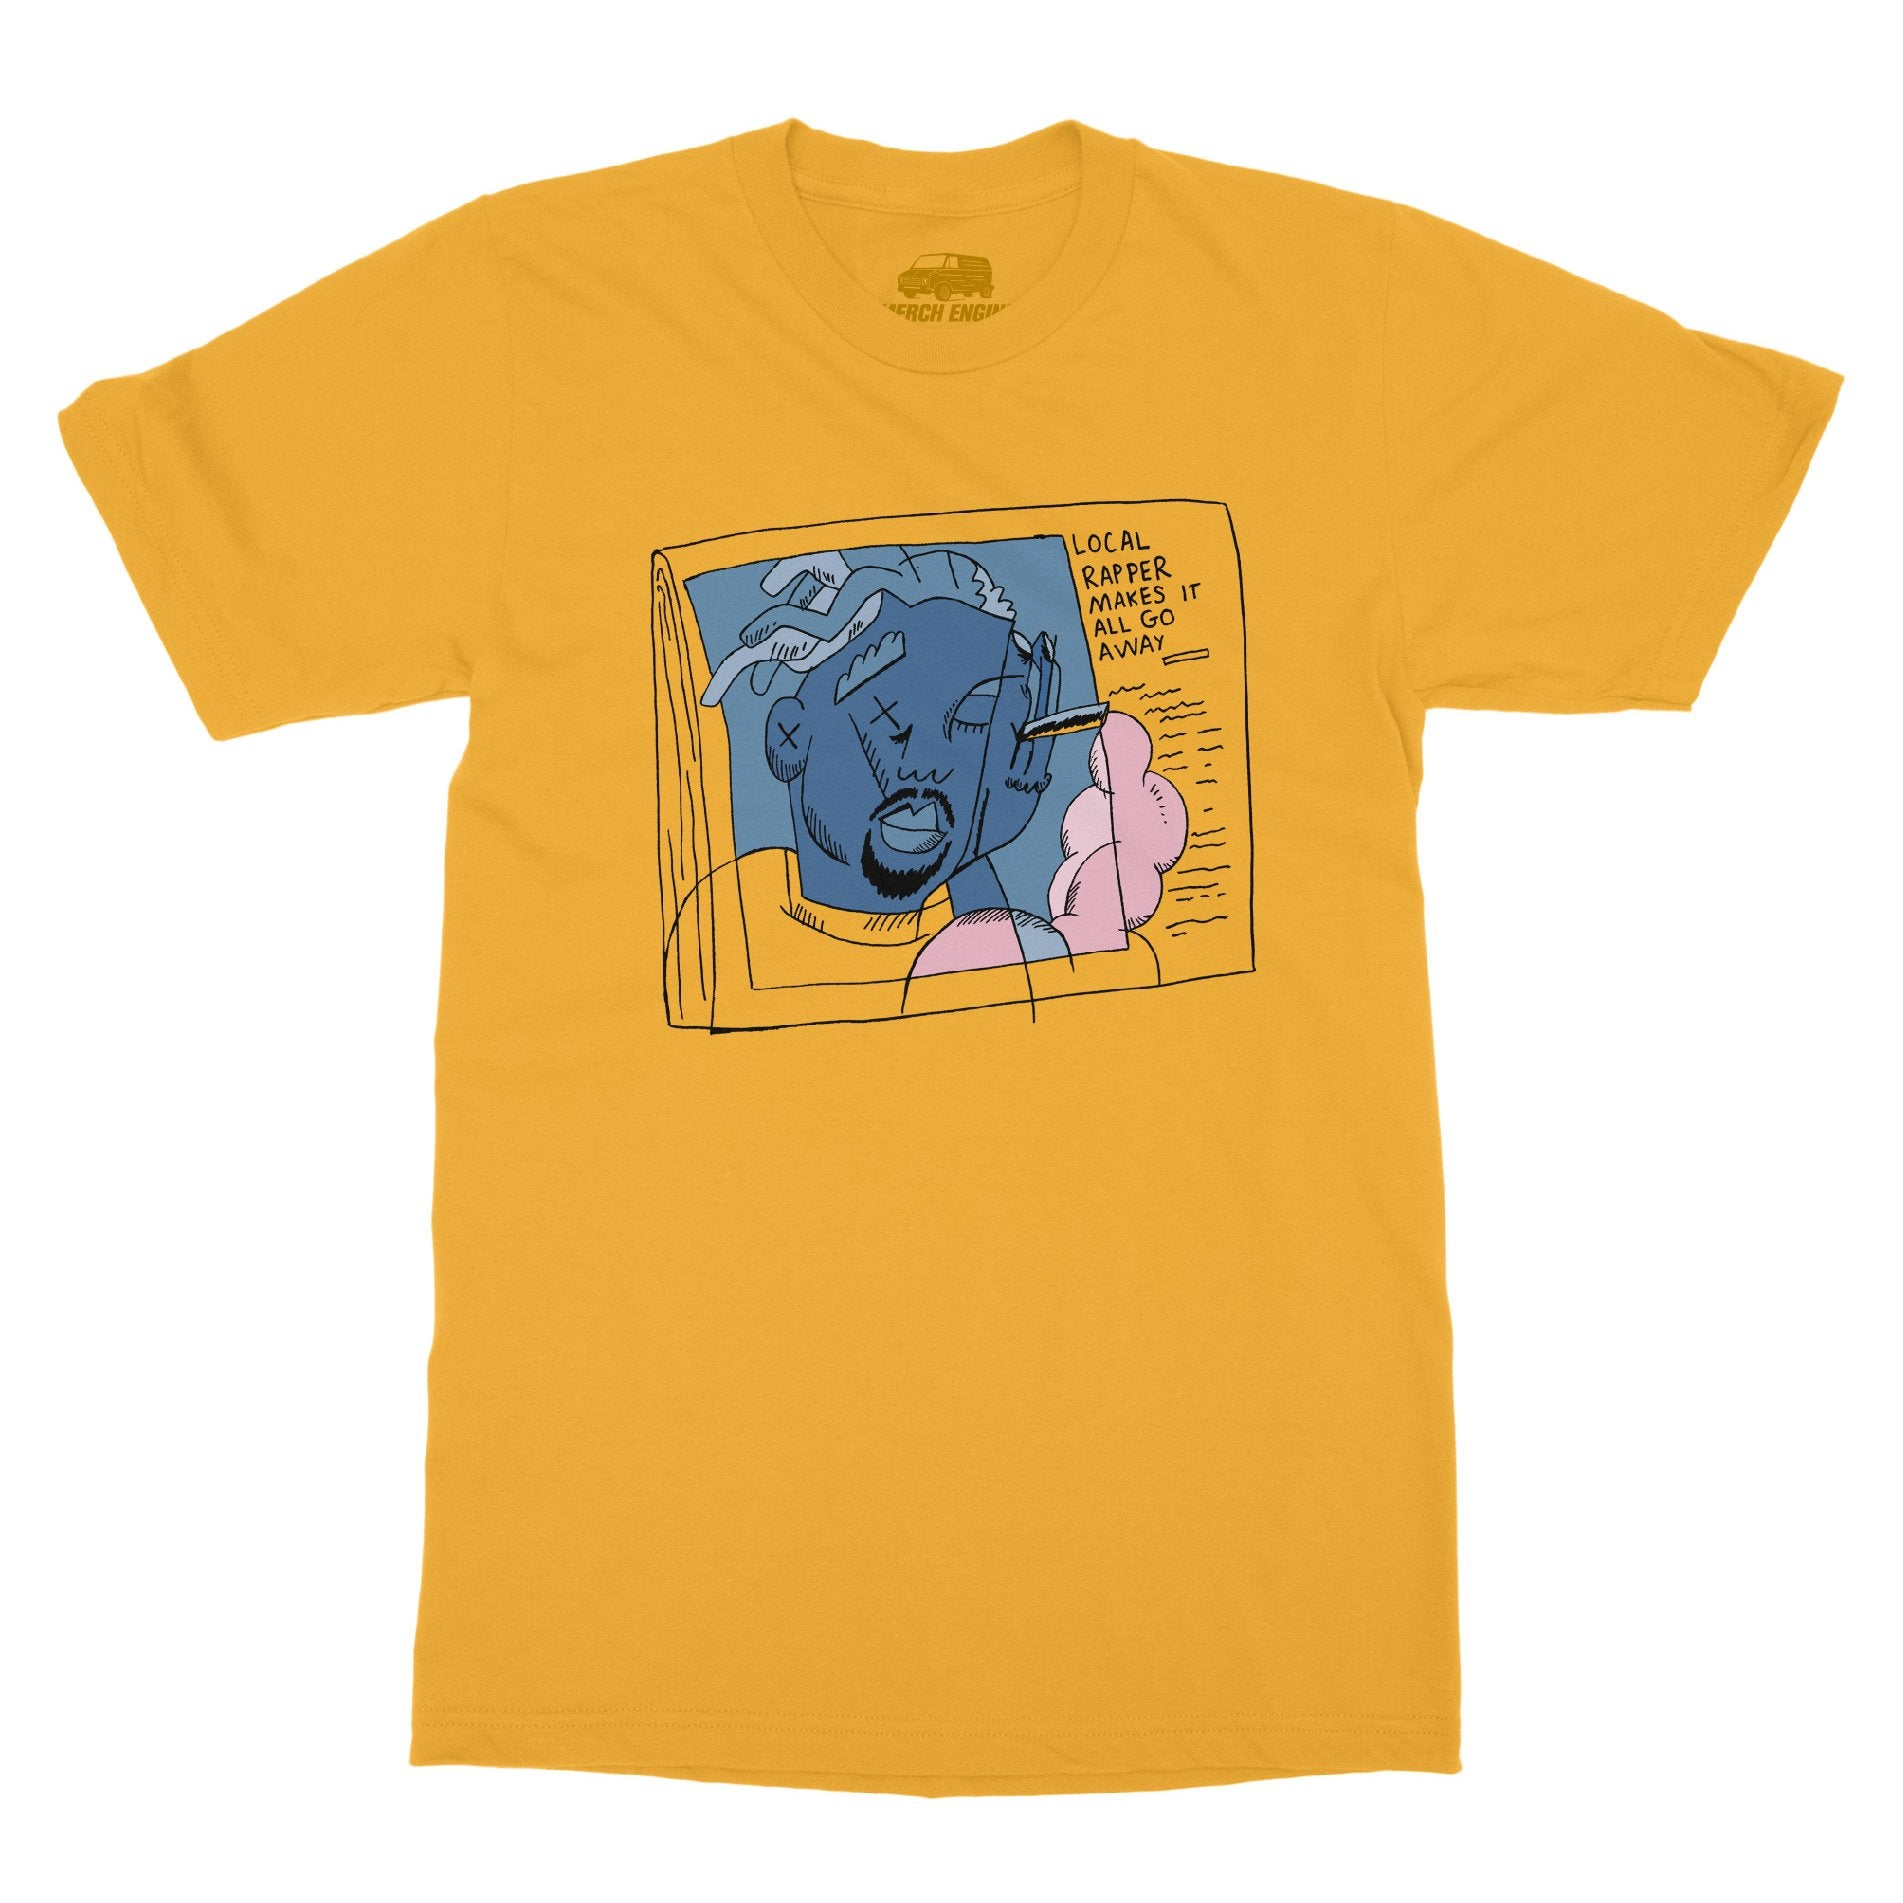 Merch Engine | Microfiche Tee by Arthur Banach - Yellow